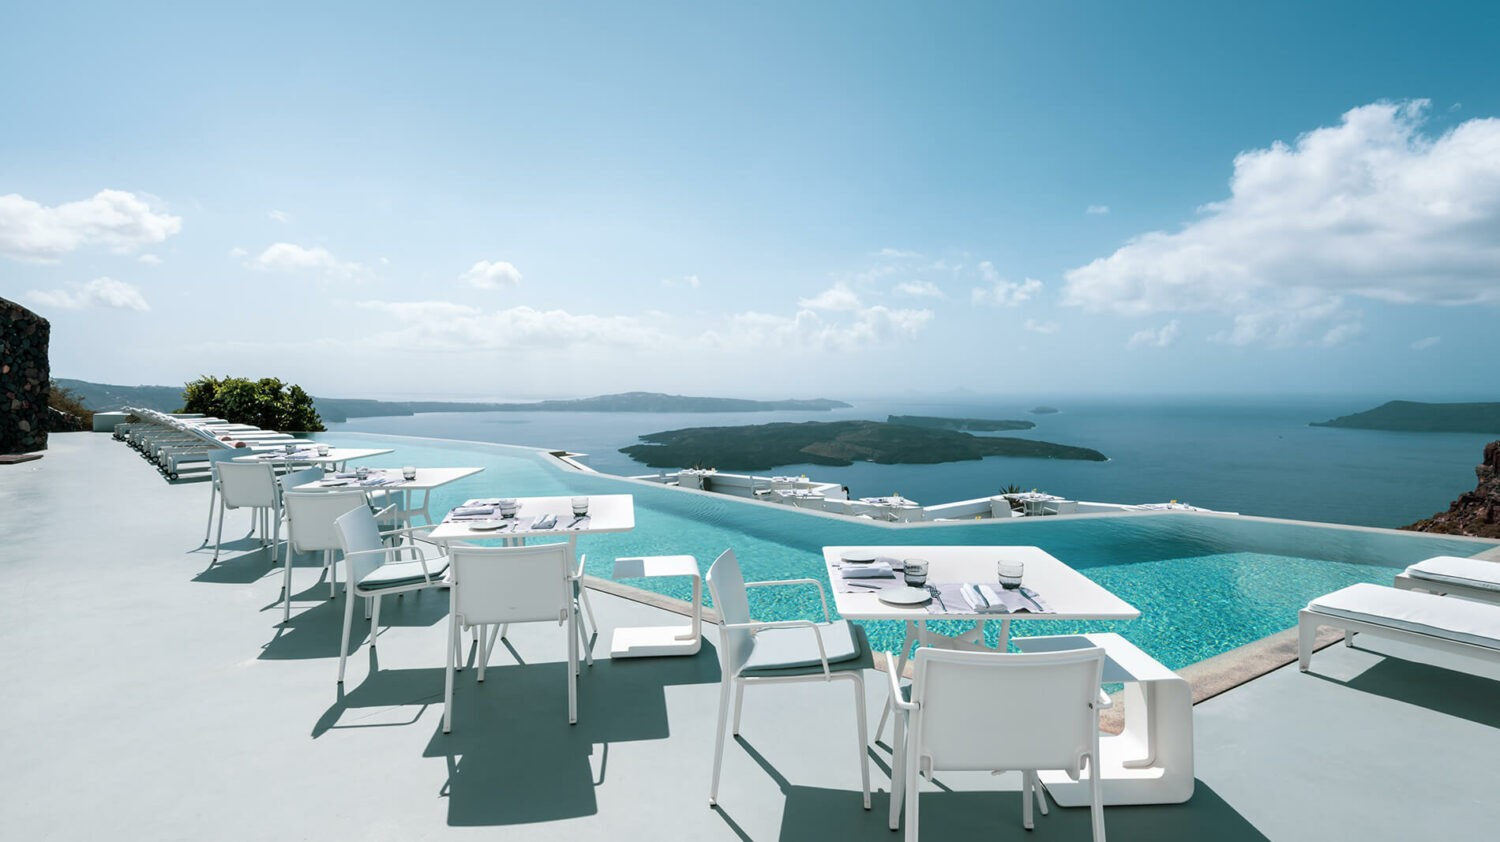 grace hotel, auberge resorts collection greece-terrace-view